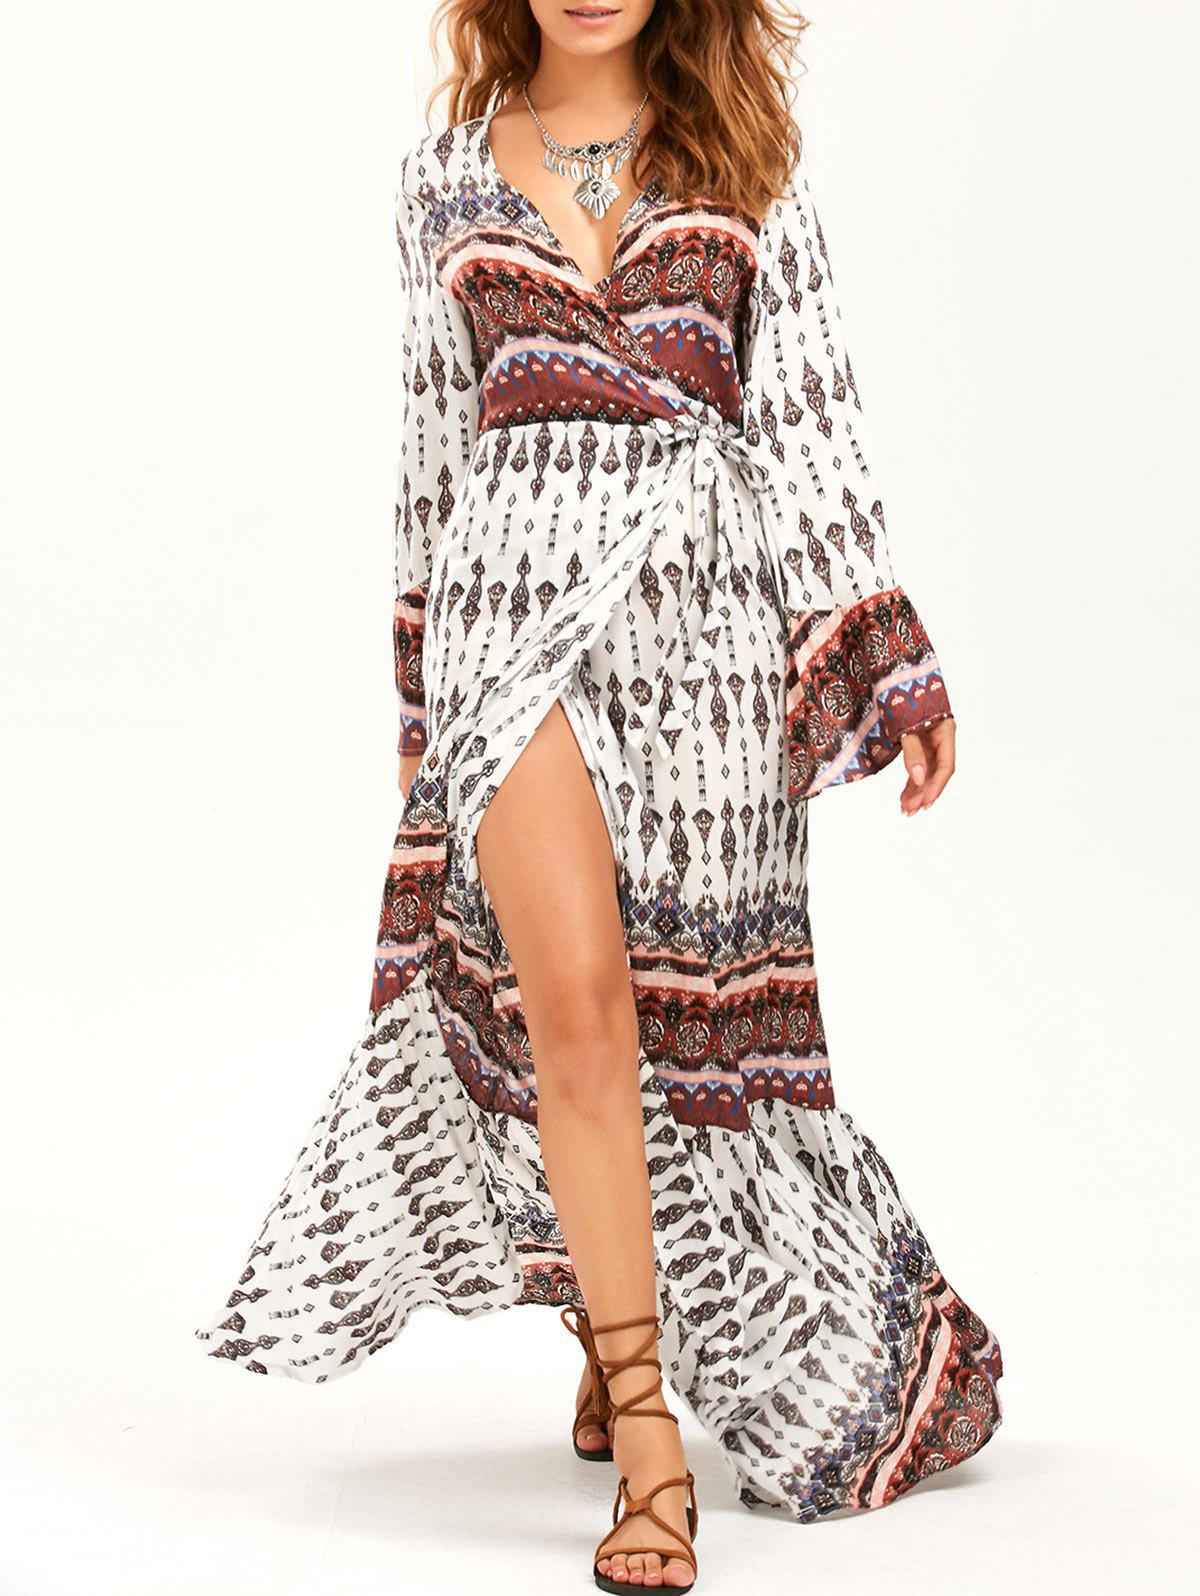 Bohemian Long Sleeve Wrap Maxi Flowy DressWOMEN<br><br>Size: ONE SIZE; Color: WHITE; Style: Bohemian; Material: Polyester; Silhouette: Beach; Dress Type: Wrap Dress; Dresses Length: Floor-Length; Neckline: V-Neck; Sleeve Type: Flare Sleeve; Sleeve Length: Long Sleeves; Pattern Type: Print; Placement Print: No; With Belt: No; Season: Fall,Spring,Summer; Weight: 0.3500kg; Package Contents: 1 x Dress;